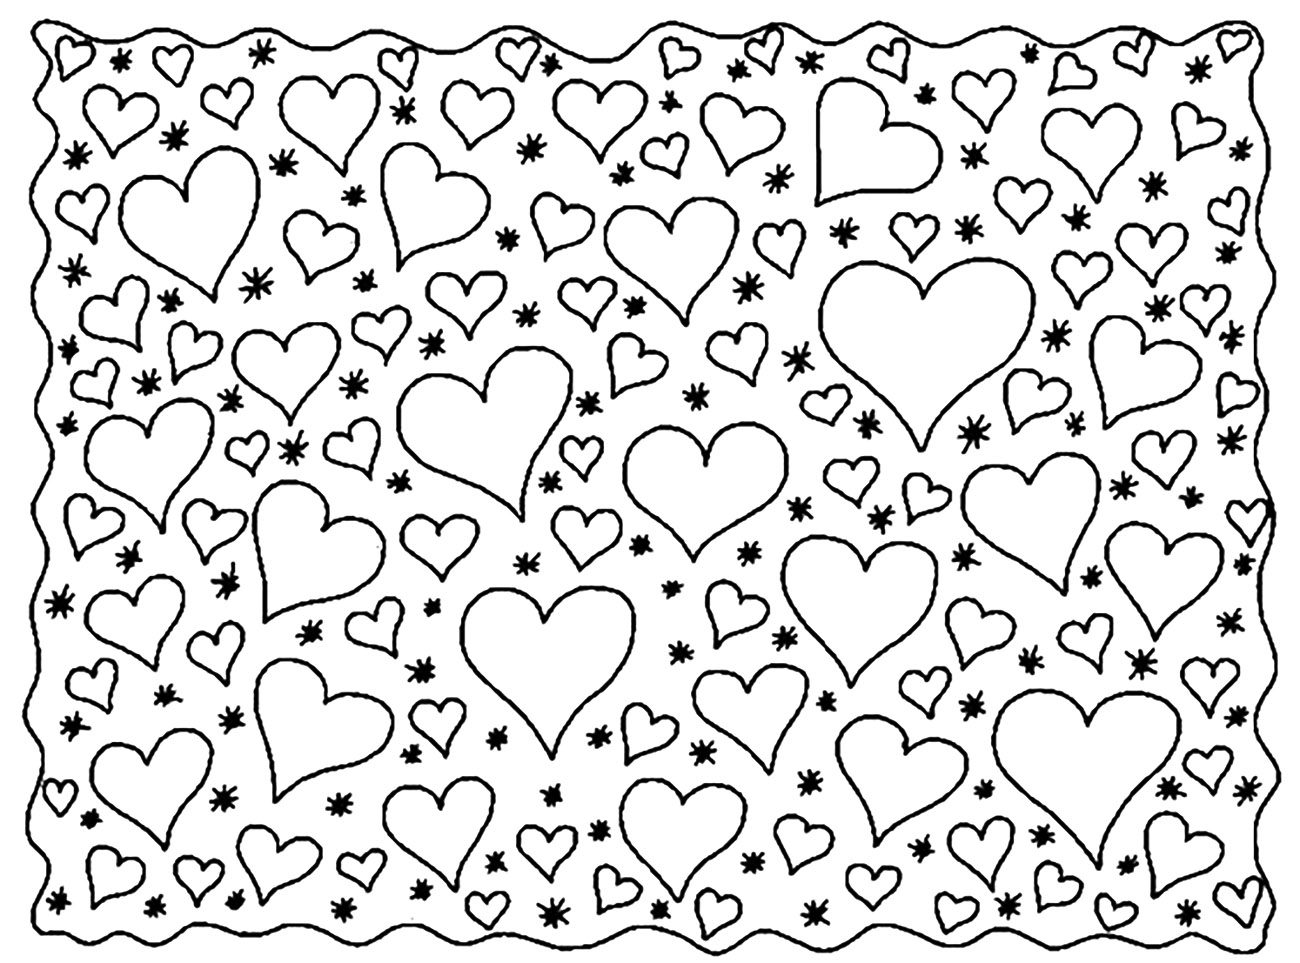 coloring pictures of hearts free printable heart coloring pages for kids cool2bkids pictures hearts coloring of 1 1